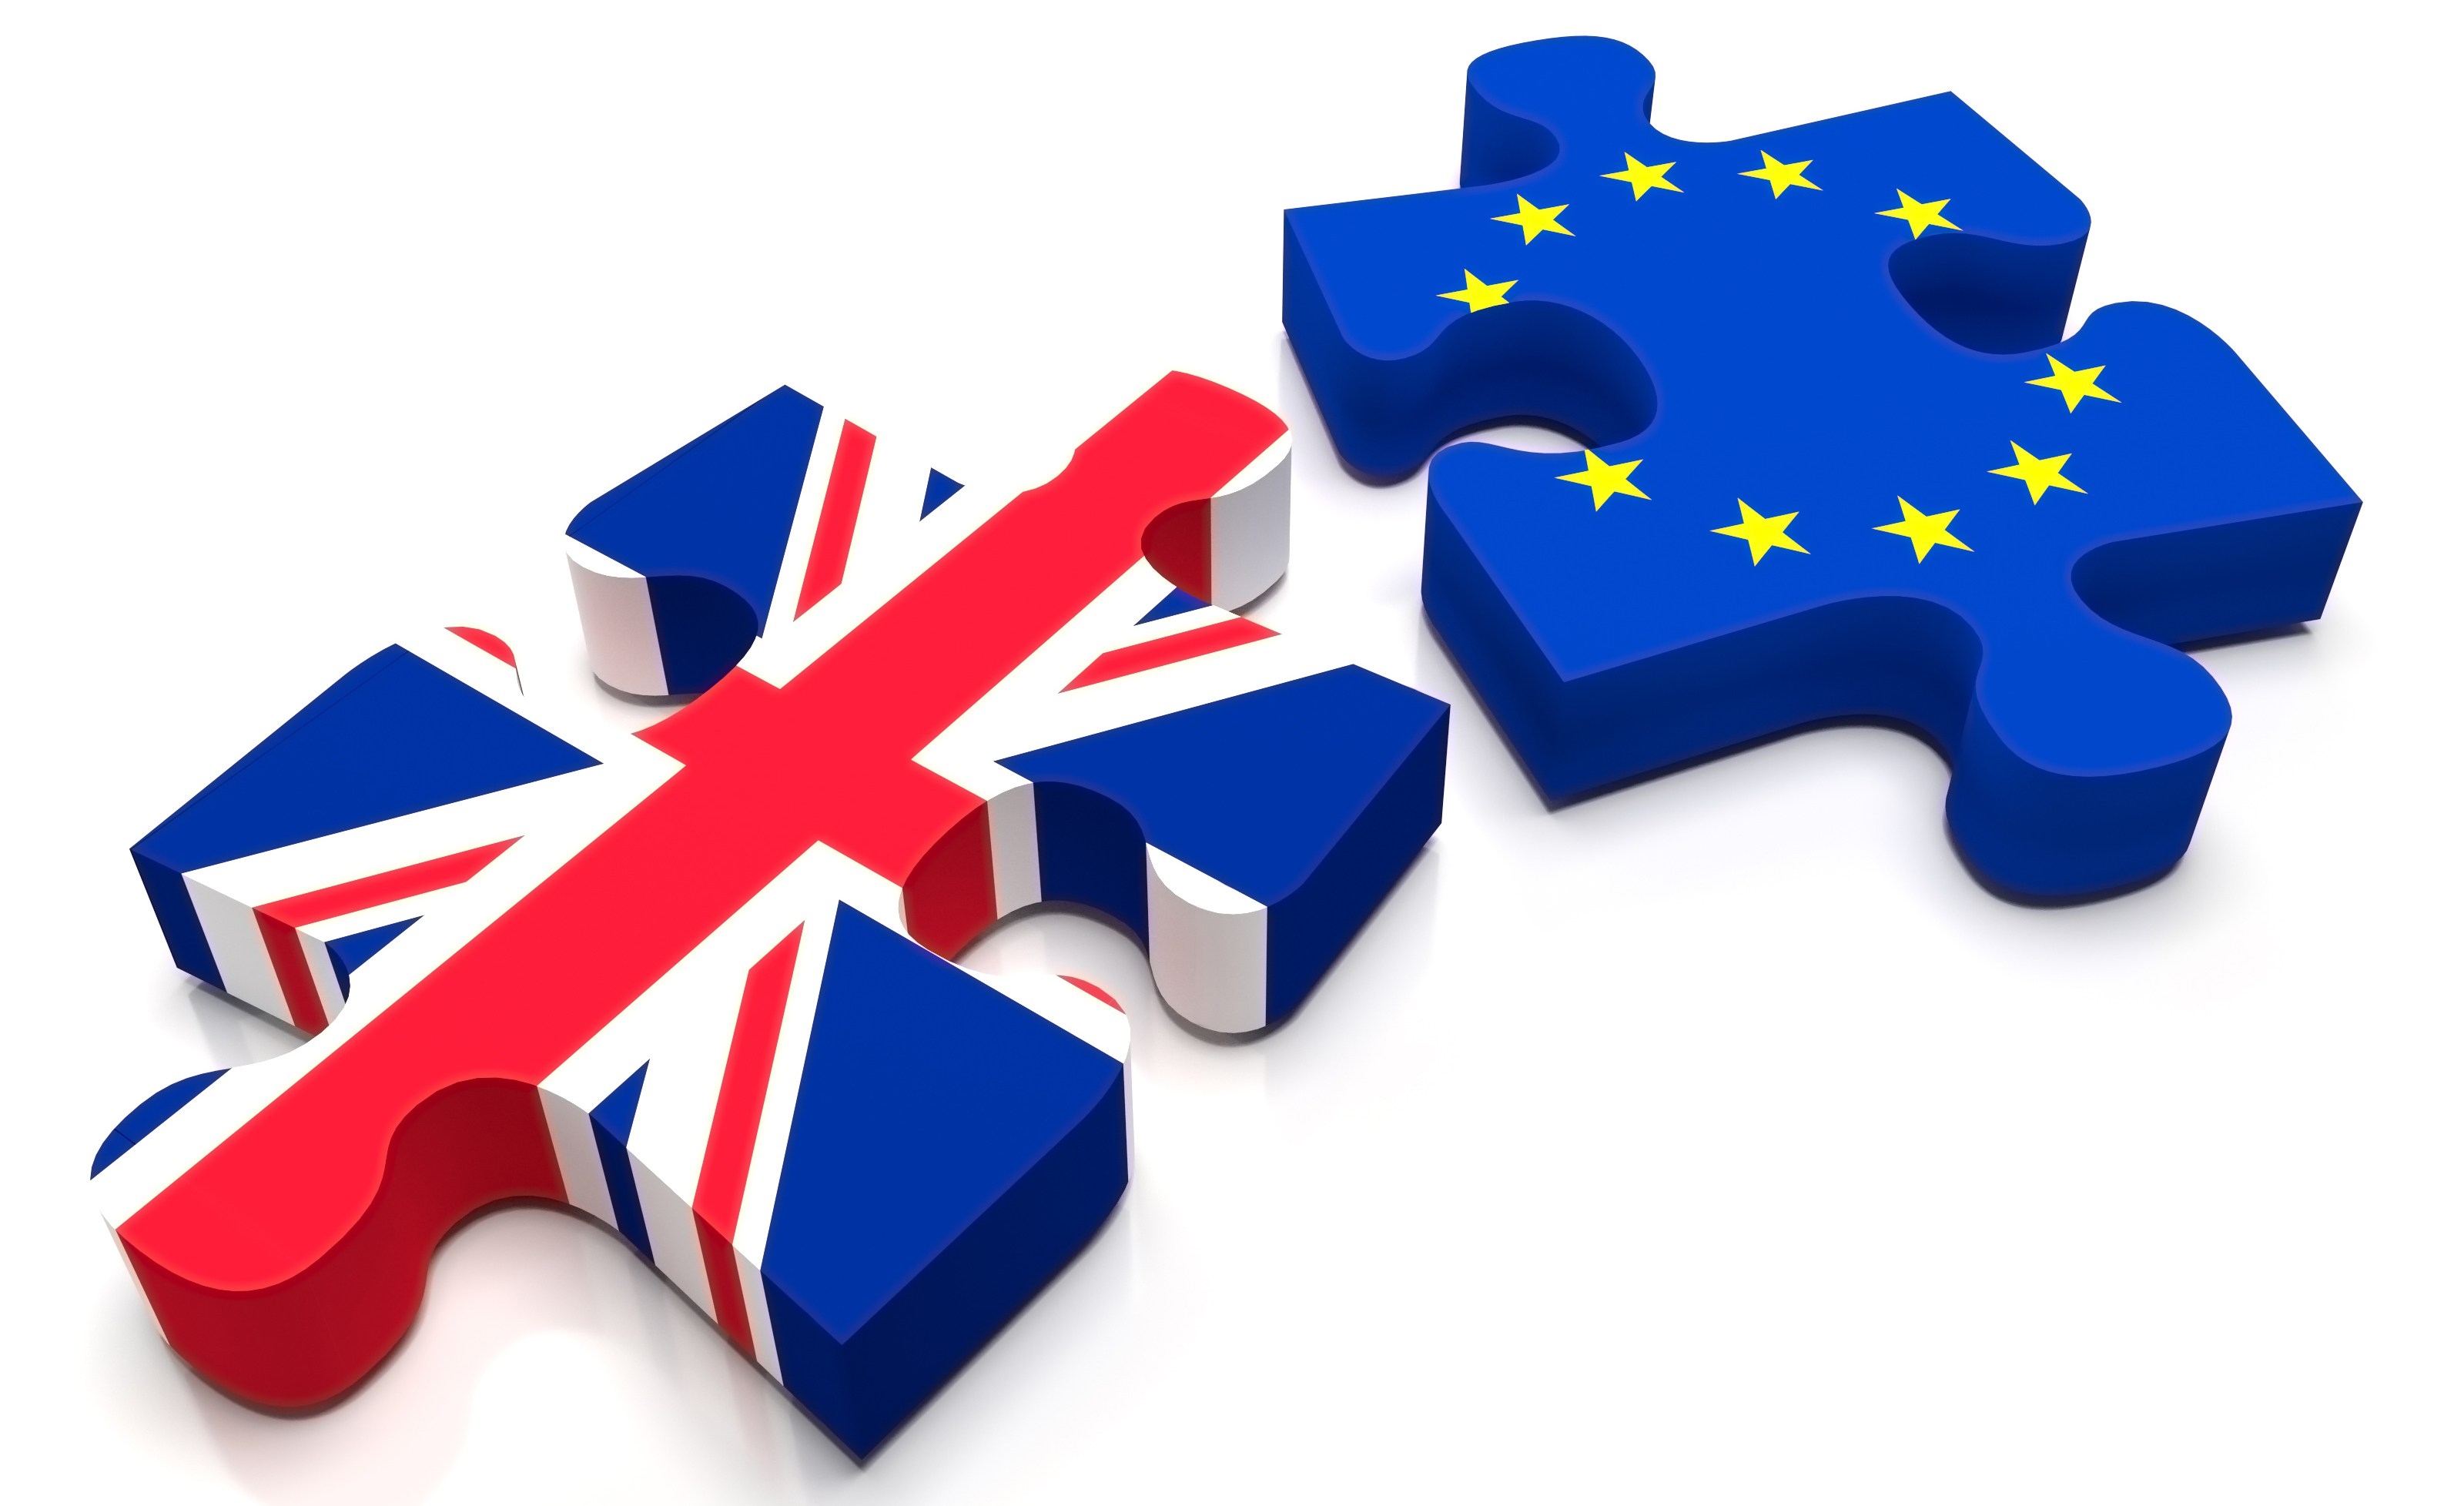 Fewer than one in five logistics organisations had a post-Brexit plan in case the UK voted to leave the European Union, a Logistics Manager survey has revealed.